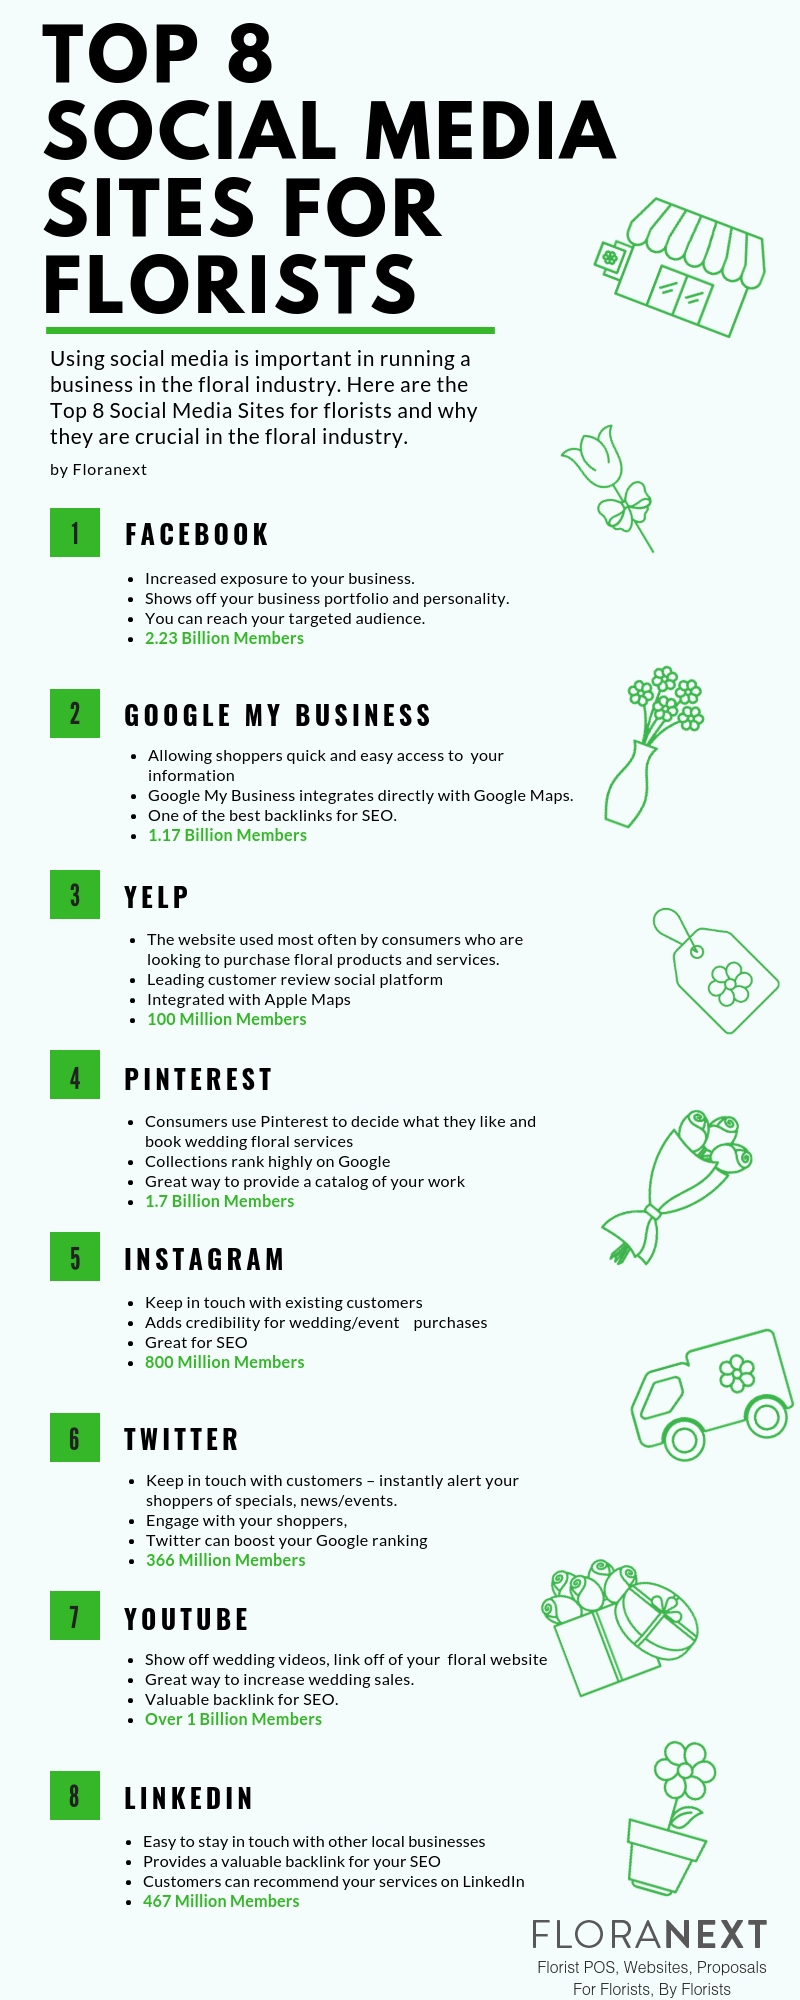 Top-8-Social-Media-Sites-For-Florists-infographic-plaza